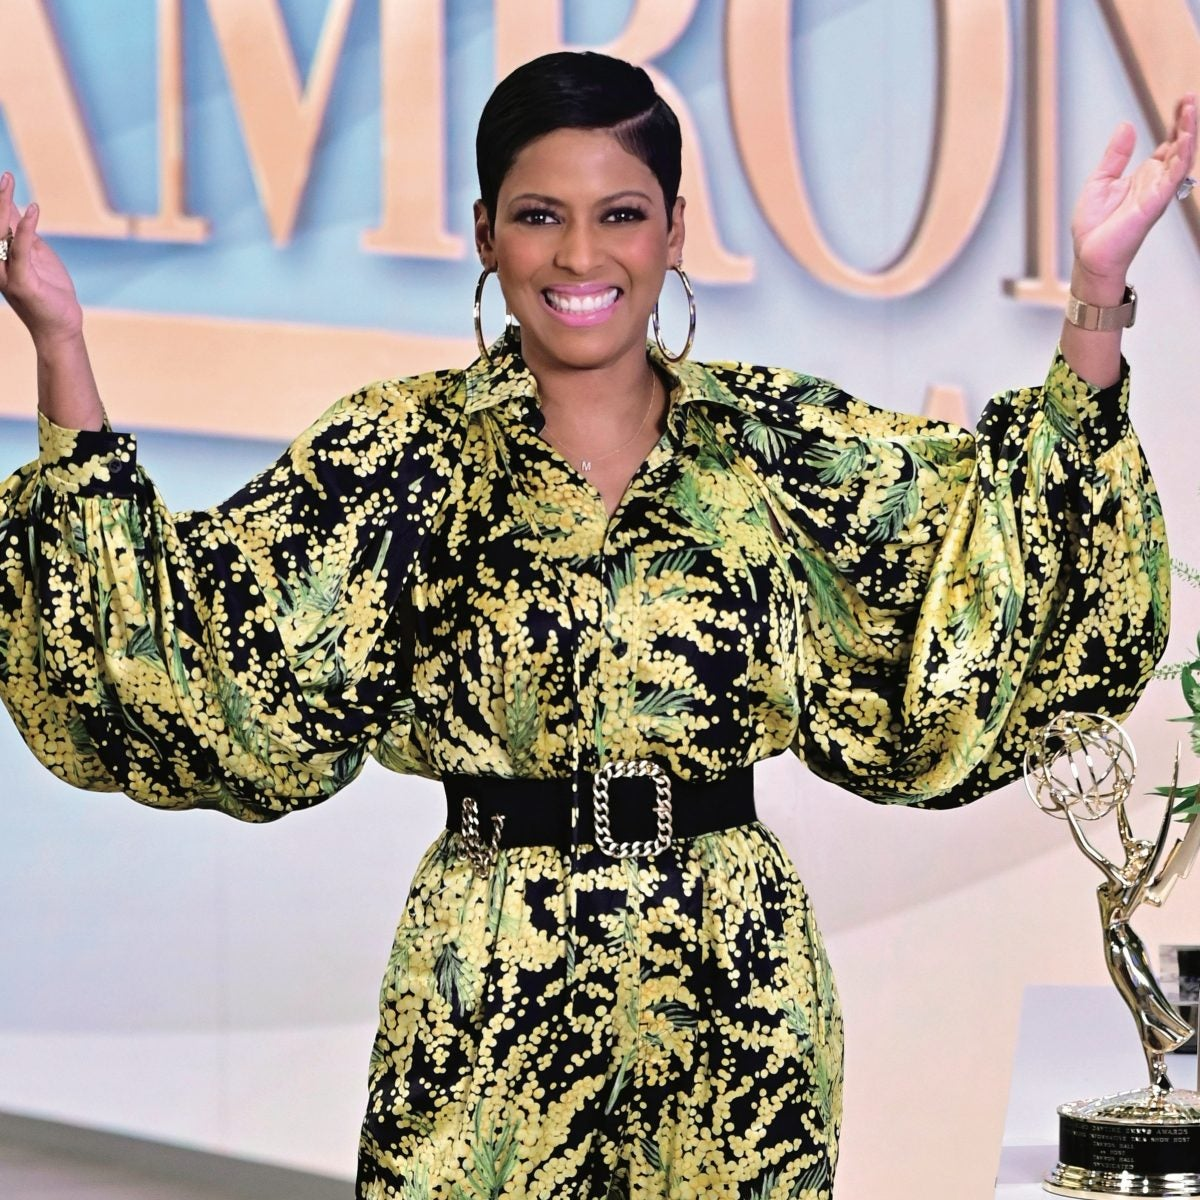 Tamron Hall's Heartfelt Plea To Black Women Who Are Victims Of Domestic Violence and Afraid